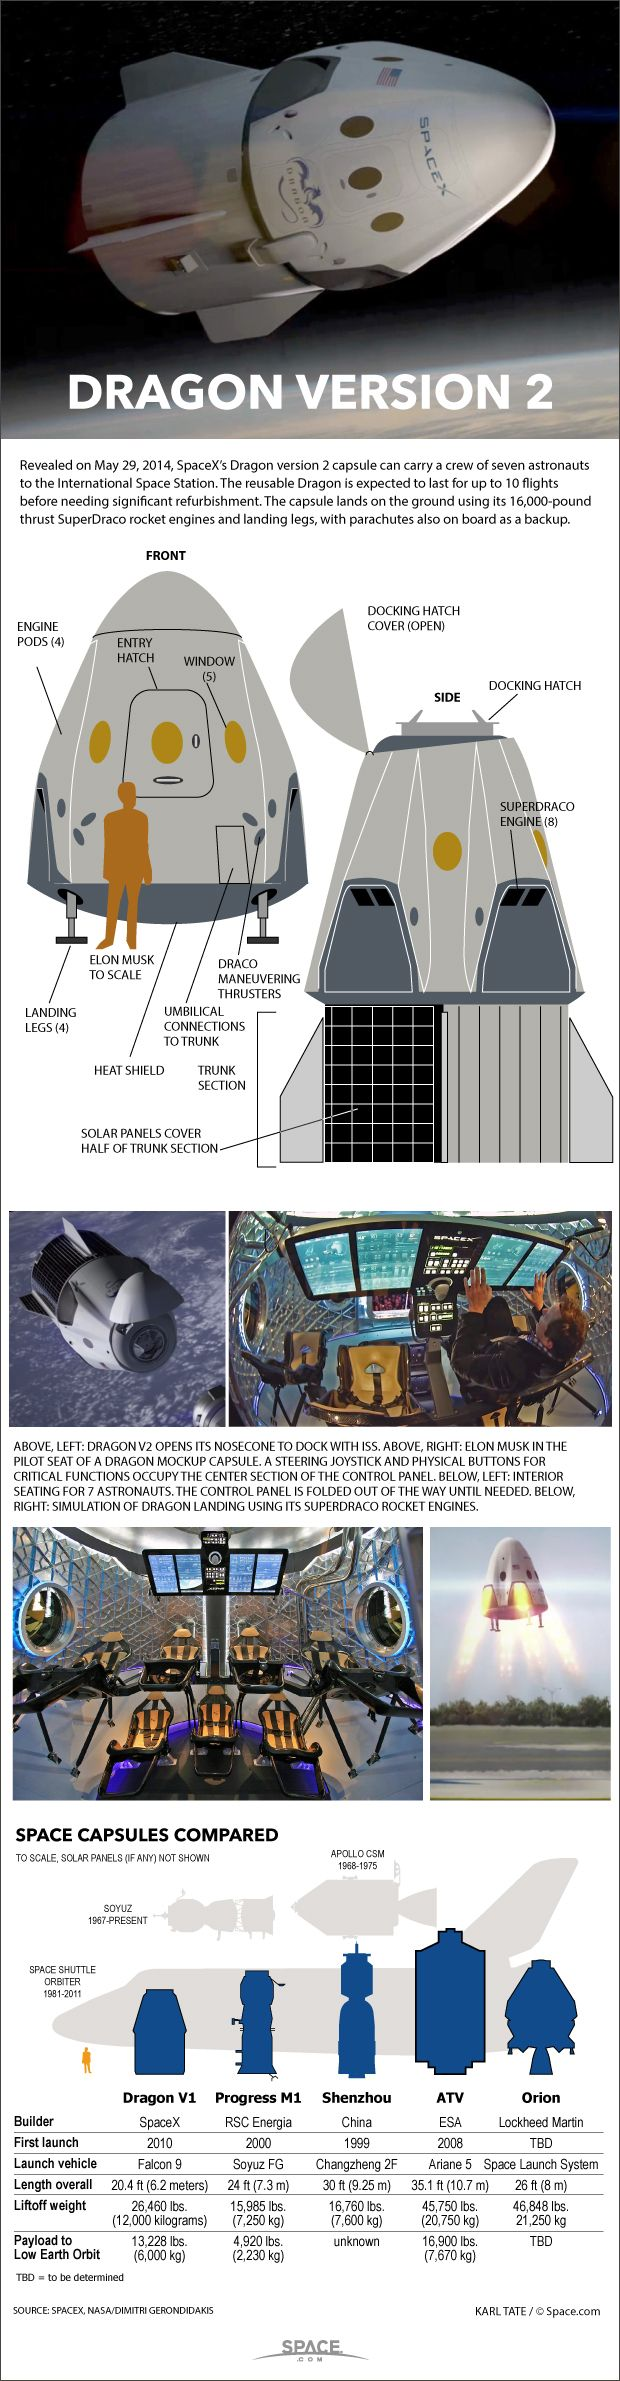 Already tested as a cargo carrier, the Dragon spacecraft can also be fitted out to shuttle passengers to low orbit and to the International Space Station. See how SpaceX's Dragon capsules work in this SPACE.com infographic.